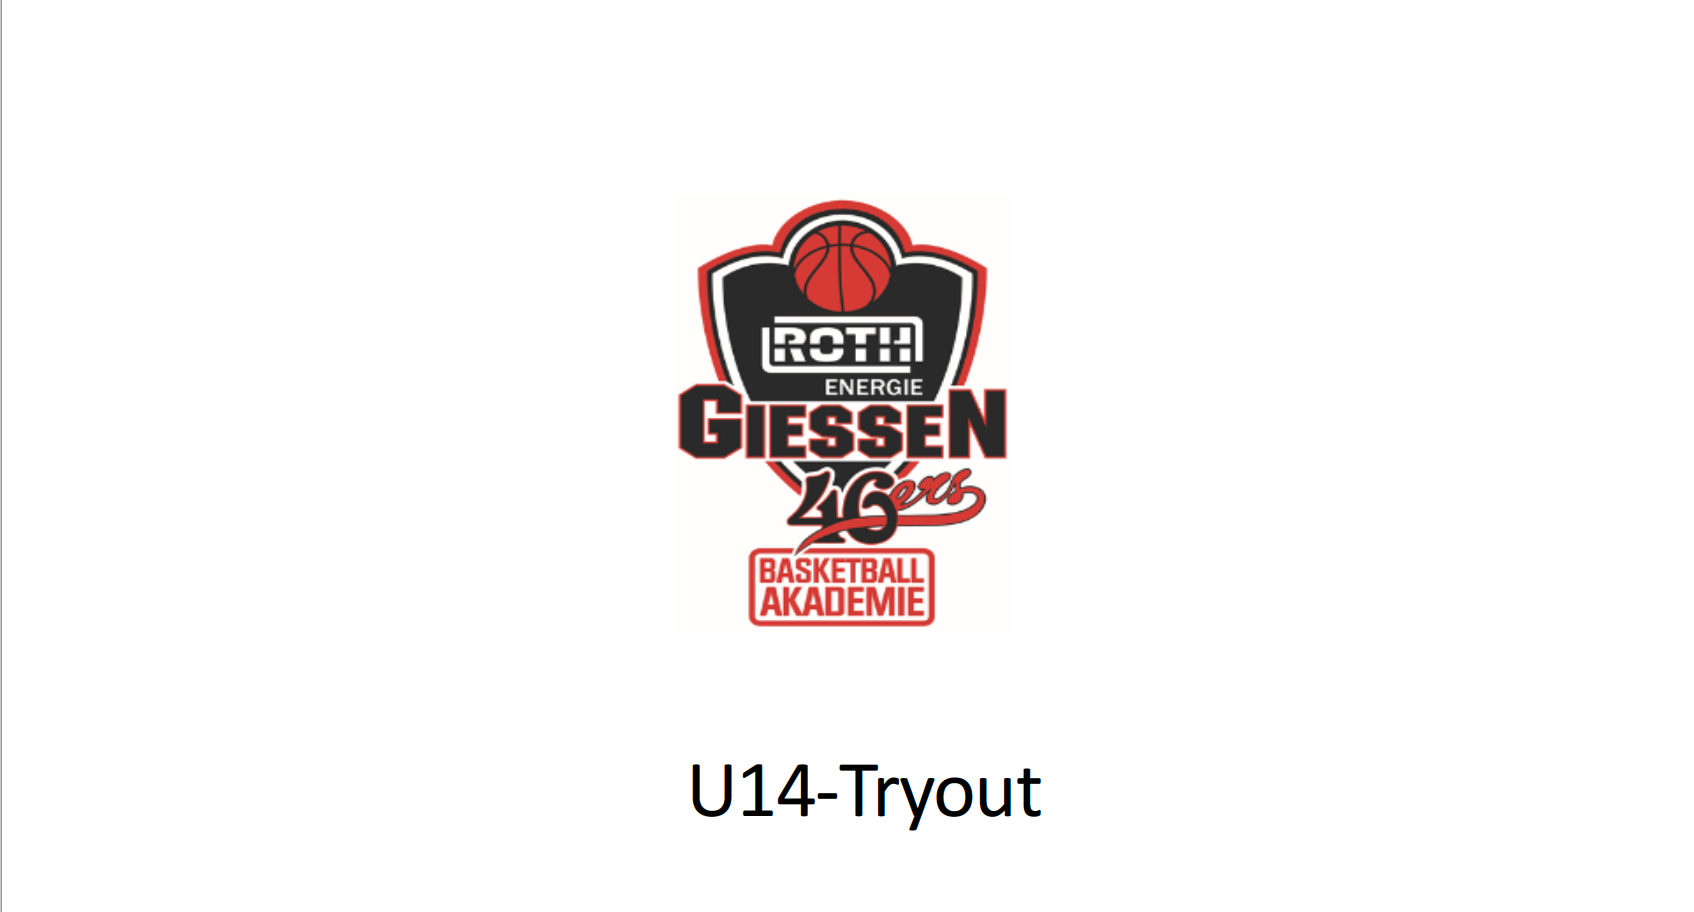 U14 Try Out Roth Energie Basketball-Akademie GIESSEN 46ers